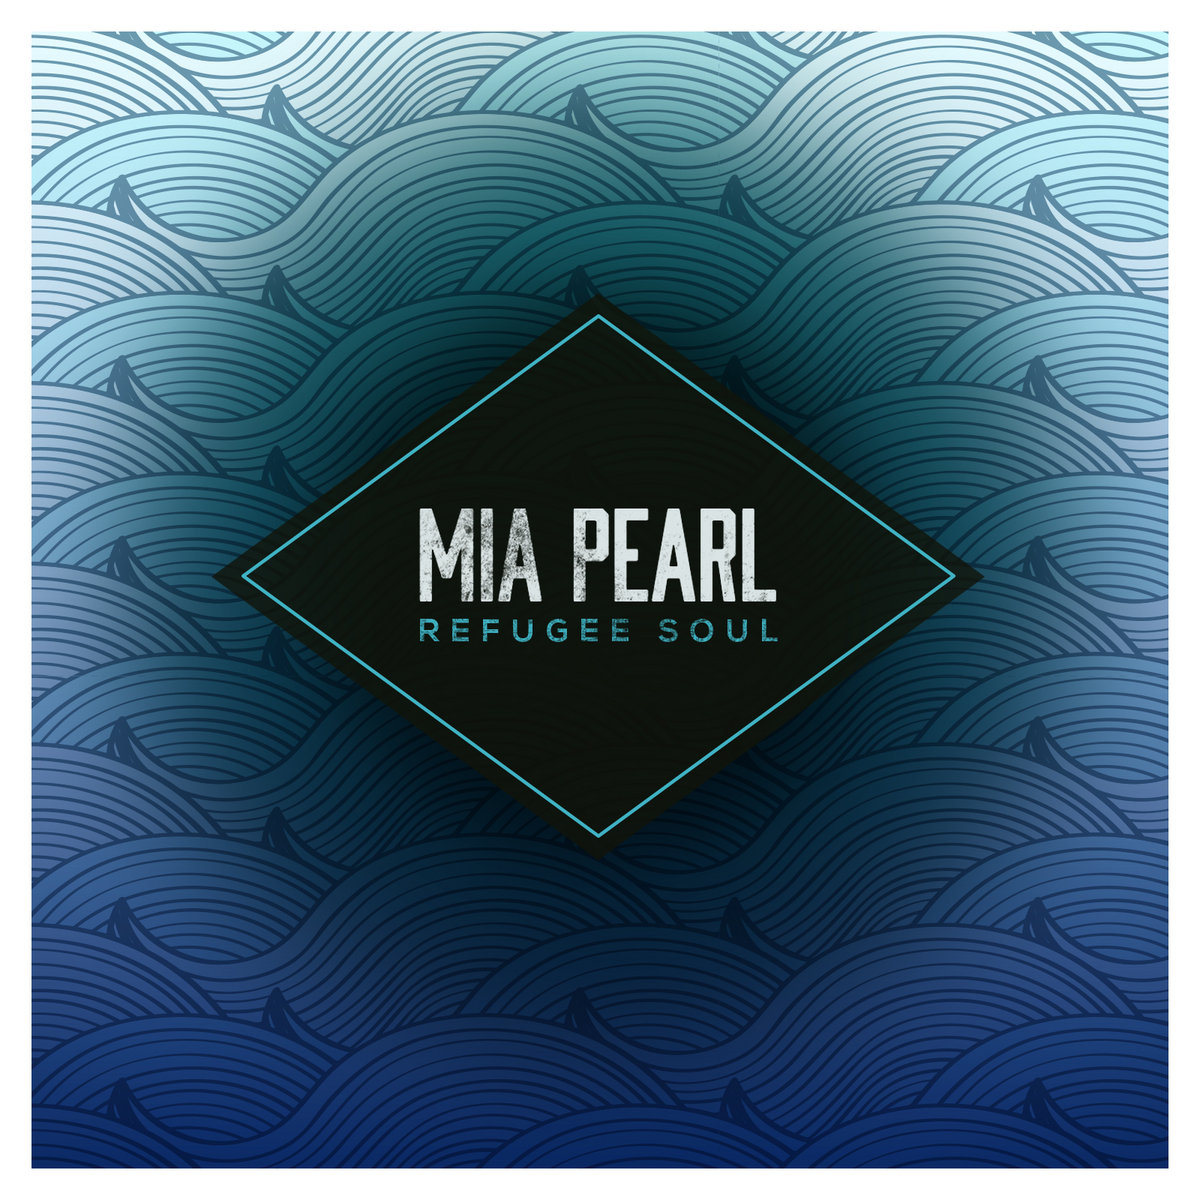 Refugee Soul by Mia Pearl